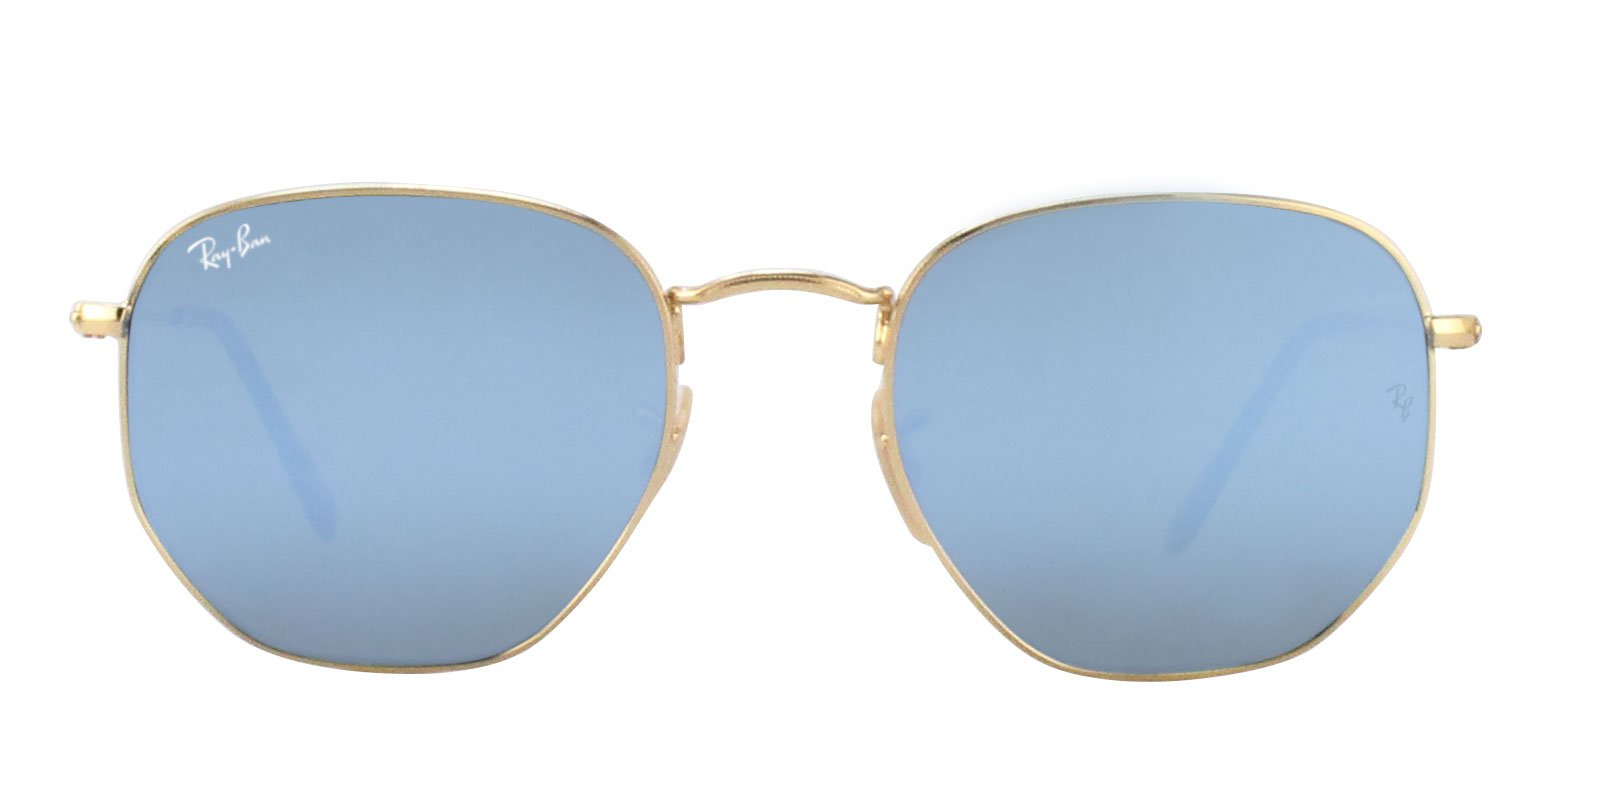 Ray Ban - RB3548N Gold Oval Unisex Sunglasses - 54mm-Sunglasses-Designer Eyes